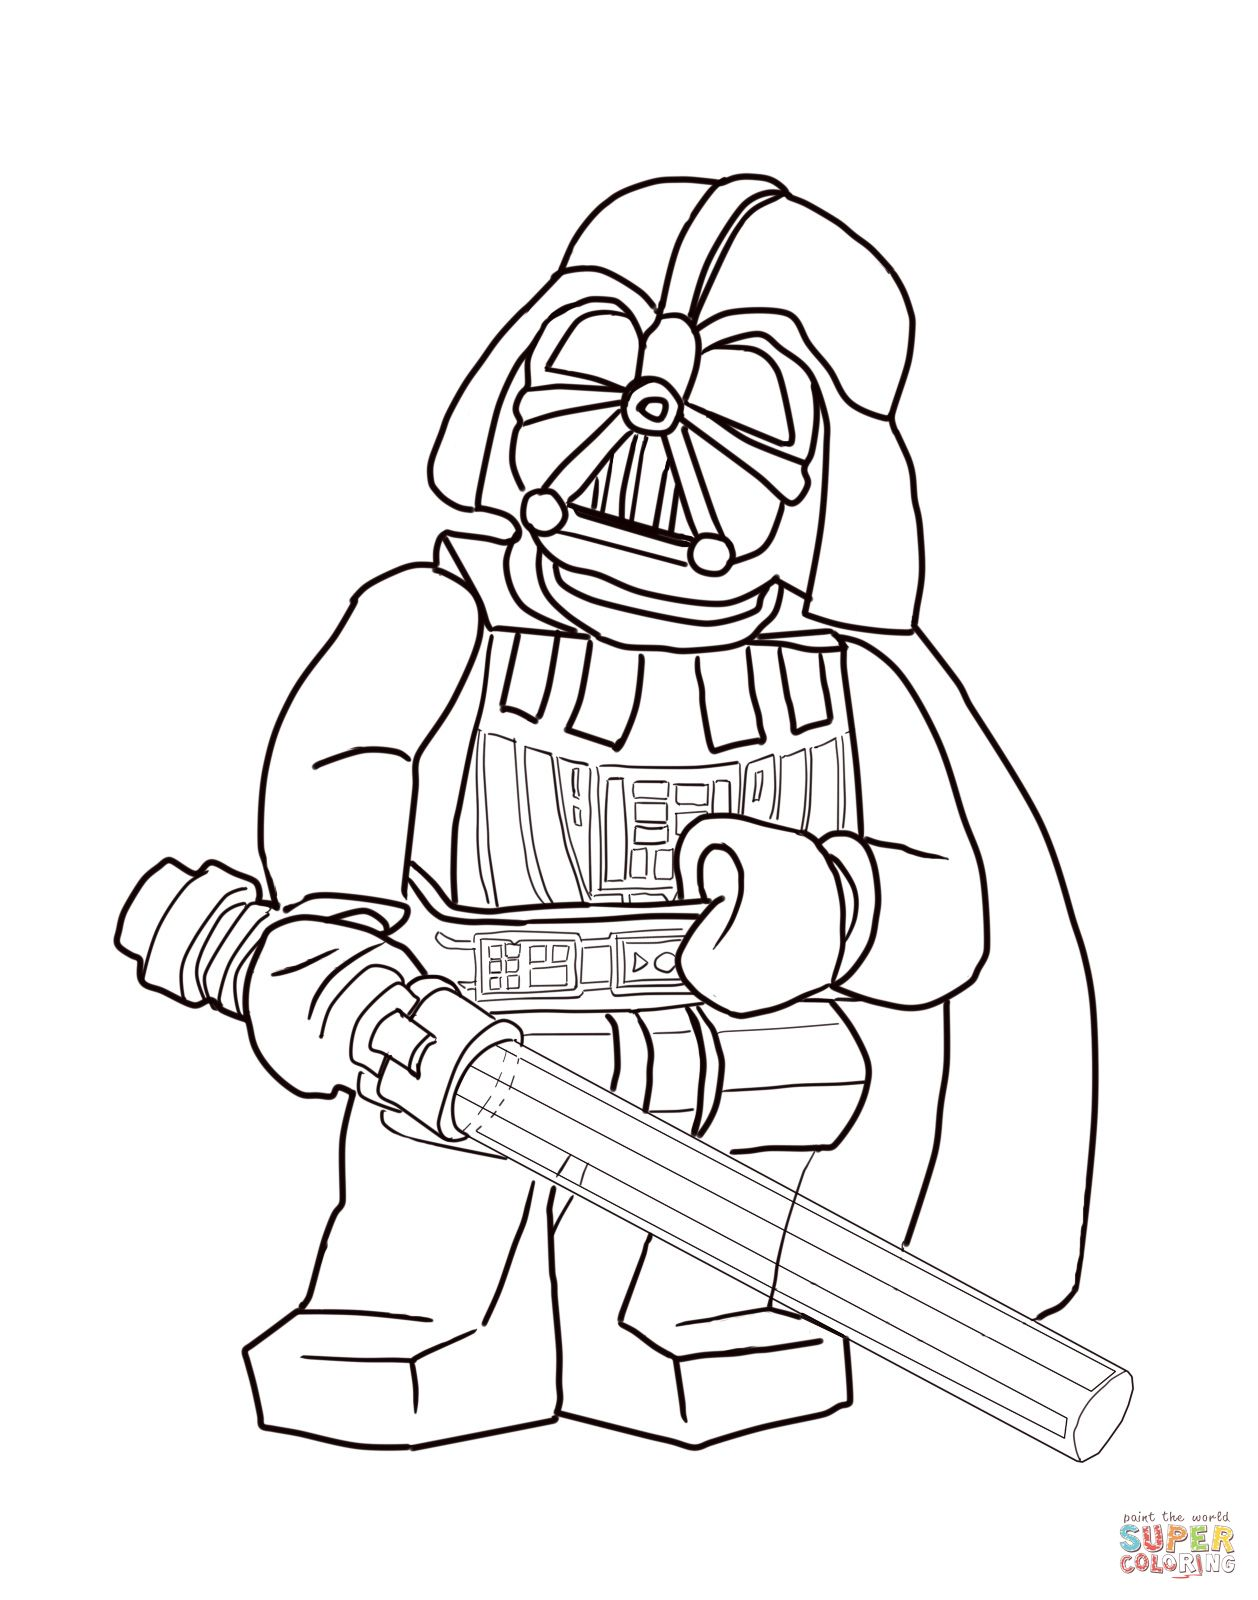 Lego Star Wars Darth Vader Coloring Pages Lego star wars darth vader ...